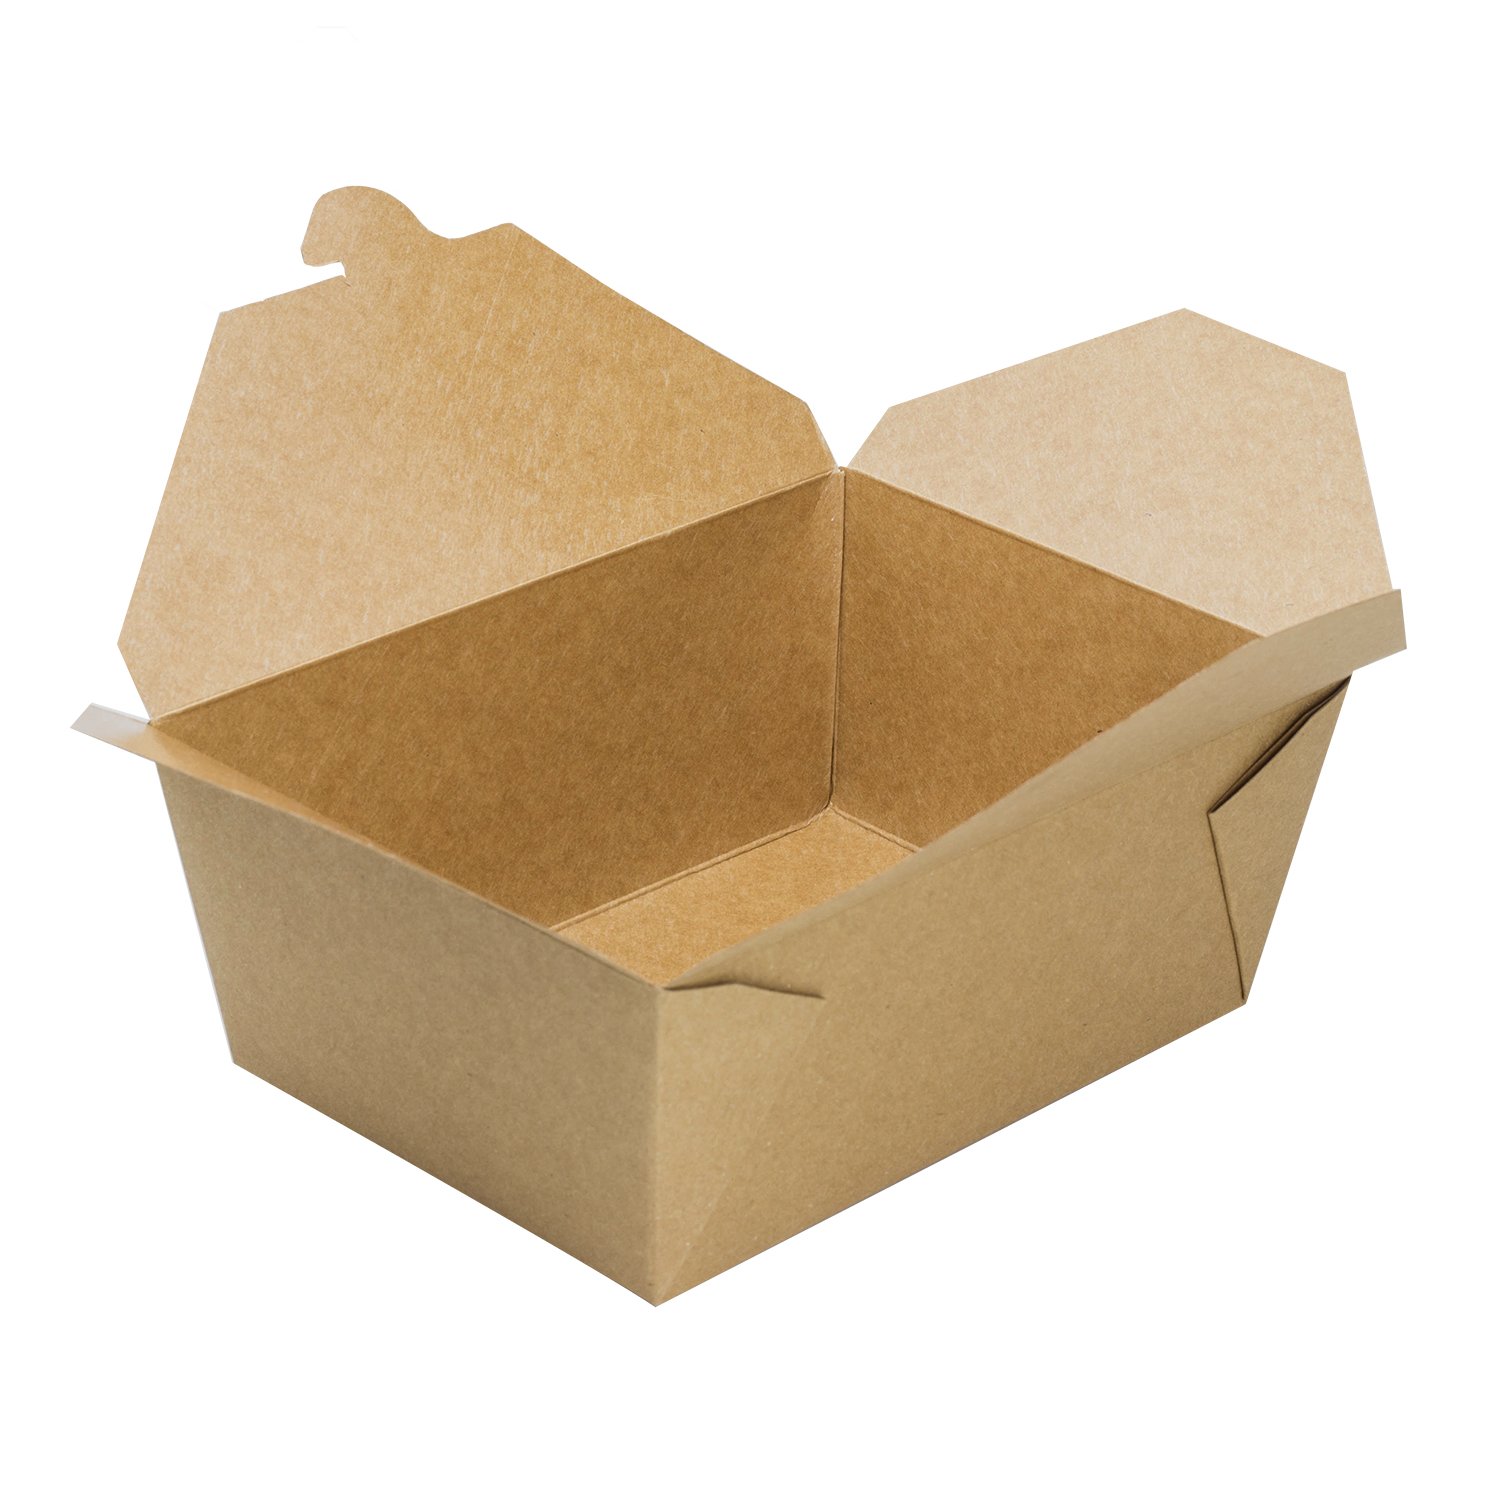 "Fold-To-Go container #4, Size: 7.75""x5.5""x3.5"", Color: Natural, Capacity: 96 fl oz., 160/cs"